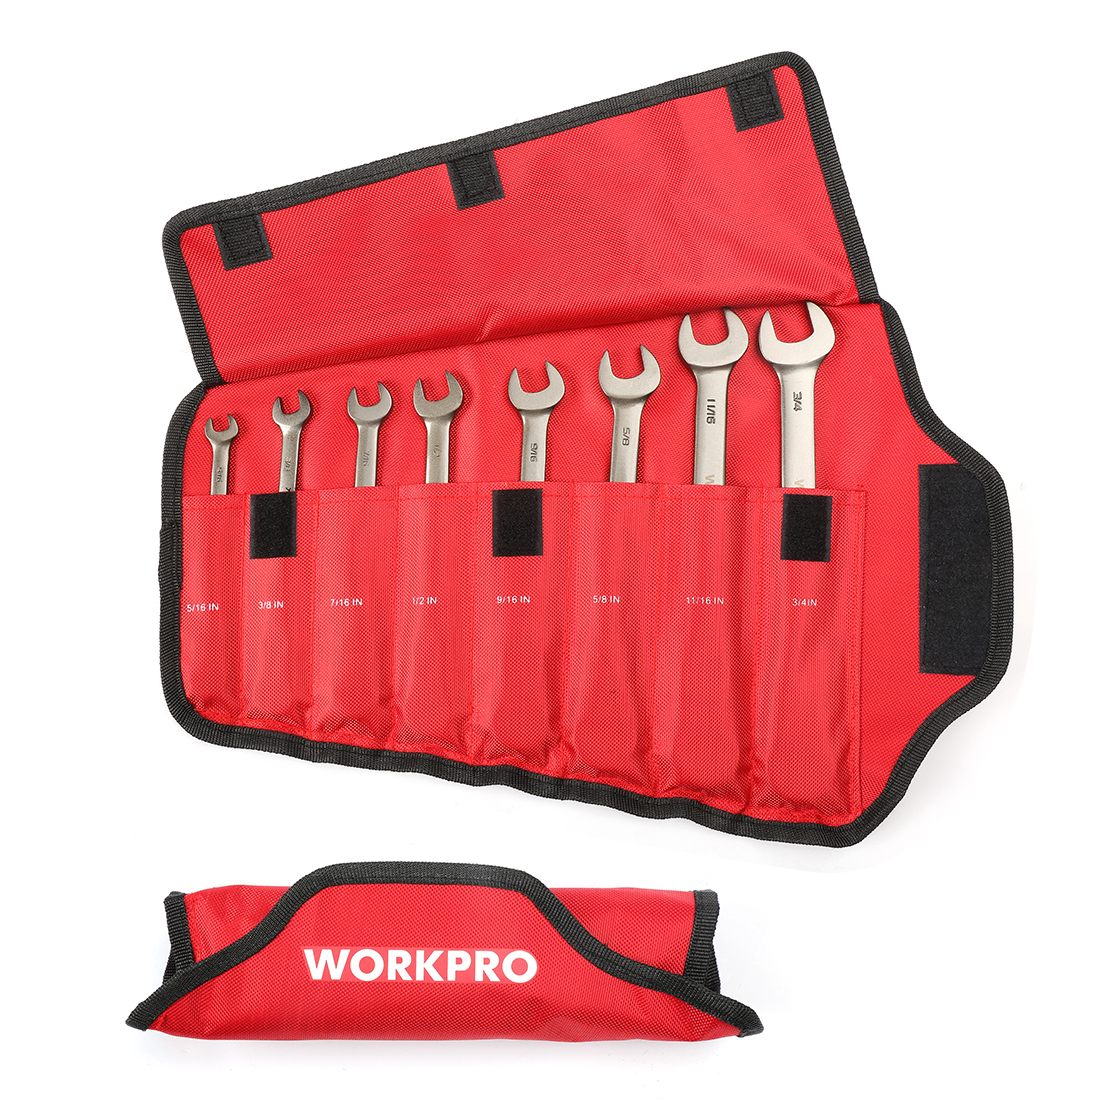 Top SaleWORKPRO Wrench-Set Spanners-Set Combination Ratcheting Car-Repair-Tools Metric/sae Flex-Head